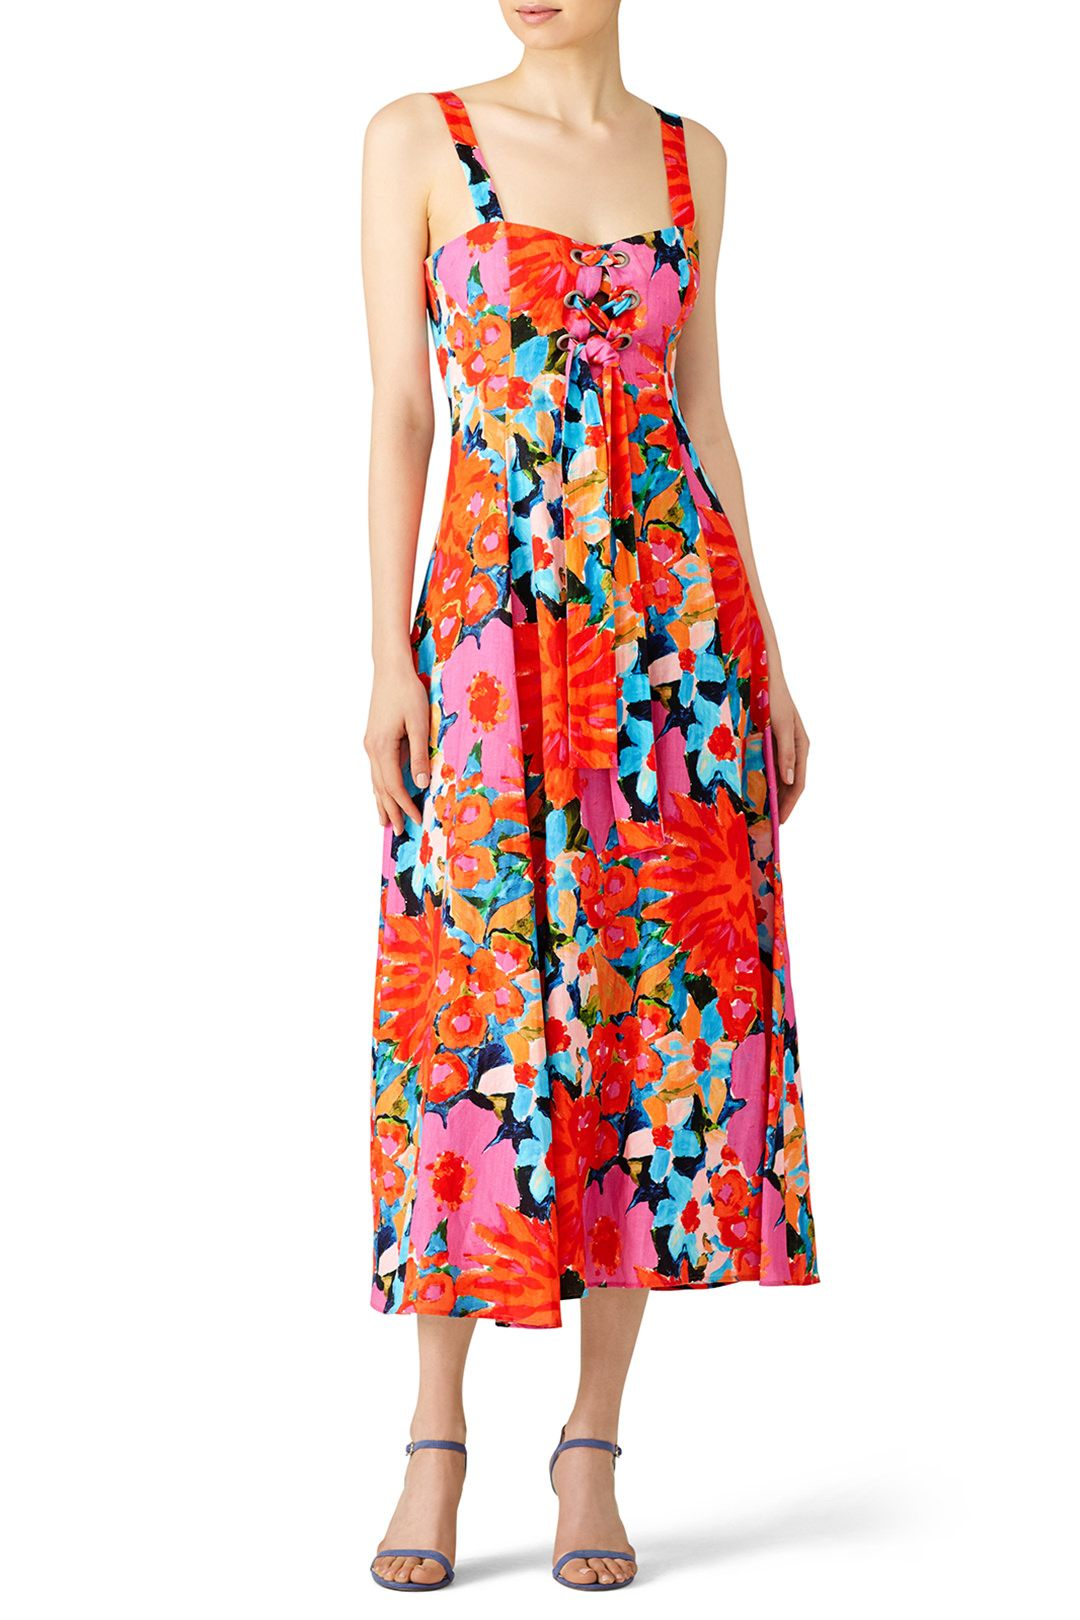 Rent Floral Mei Maxi By Mara Hoffman For 70 Only At Rent The Runway Mara Hoffman Fashion Dresses